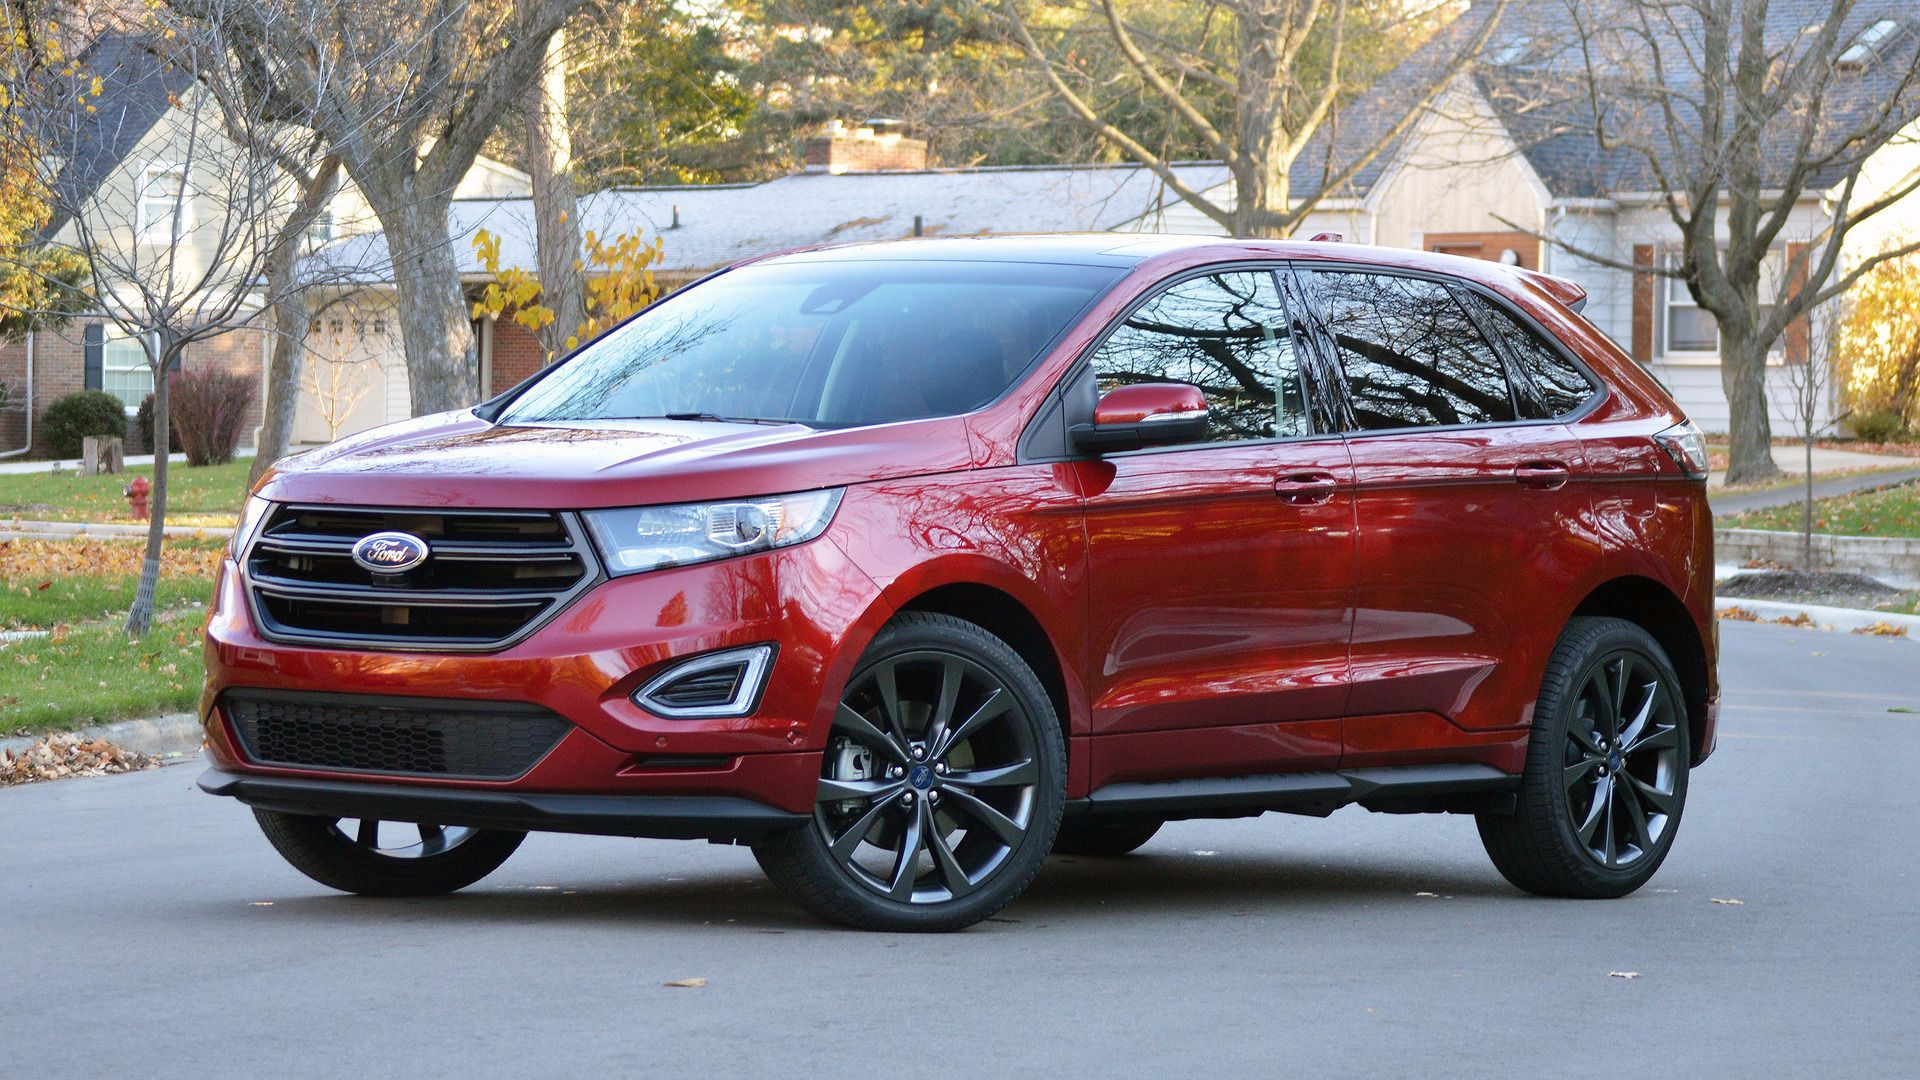 Ford Edge New Design Check More At Http Www Best Cars Club 2018